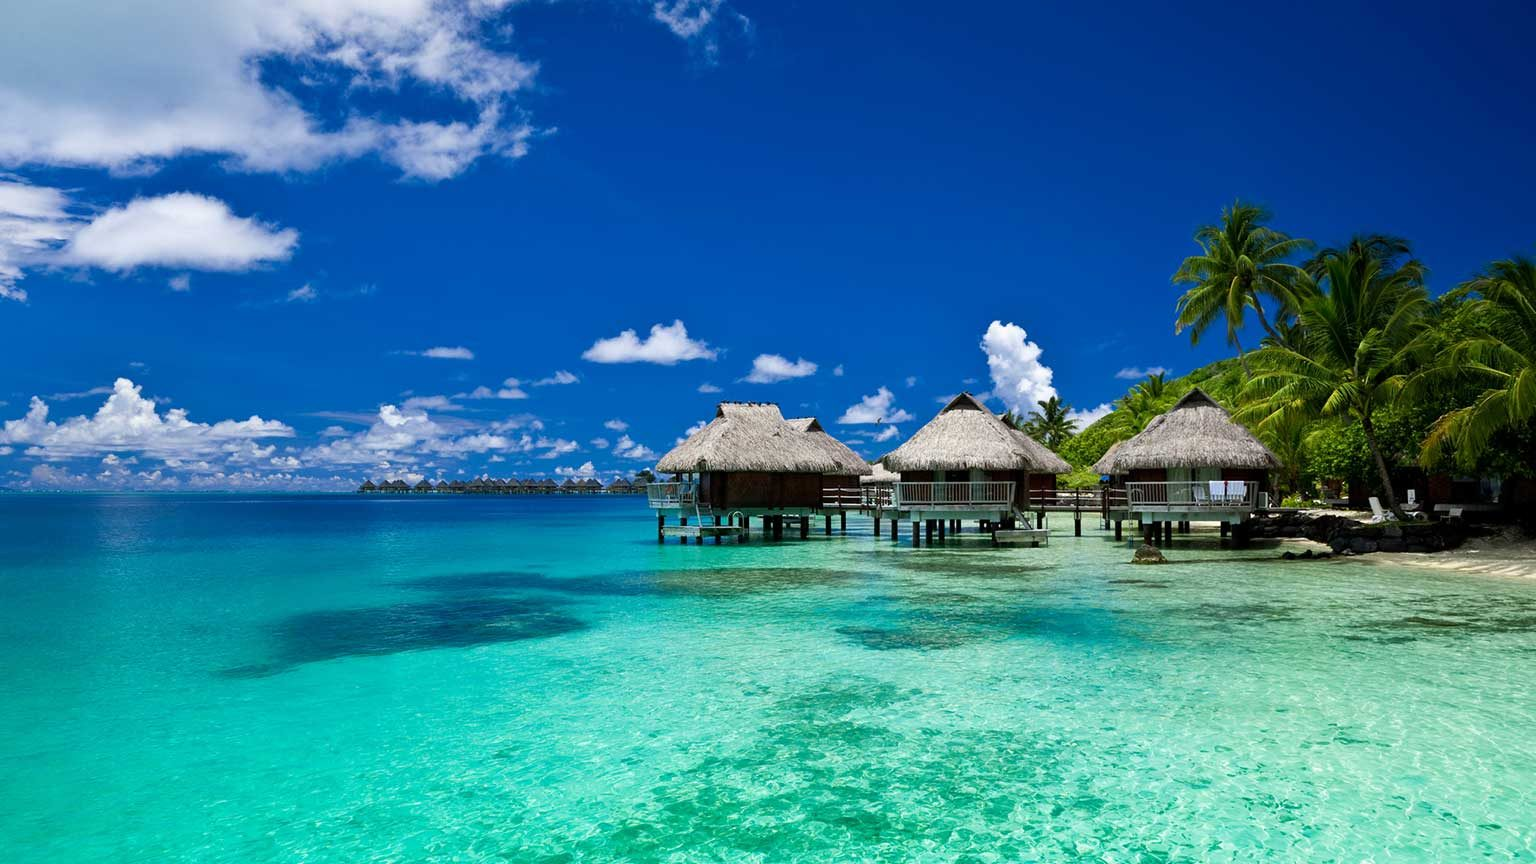 View of several overwater bungalows in Bora Bora with gorgeous sea and sky